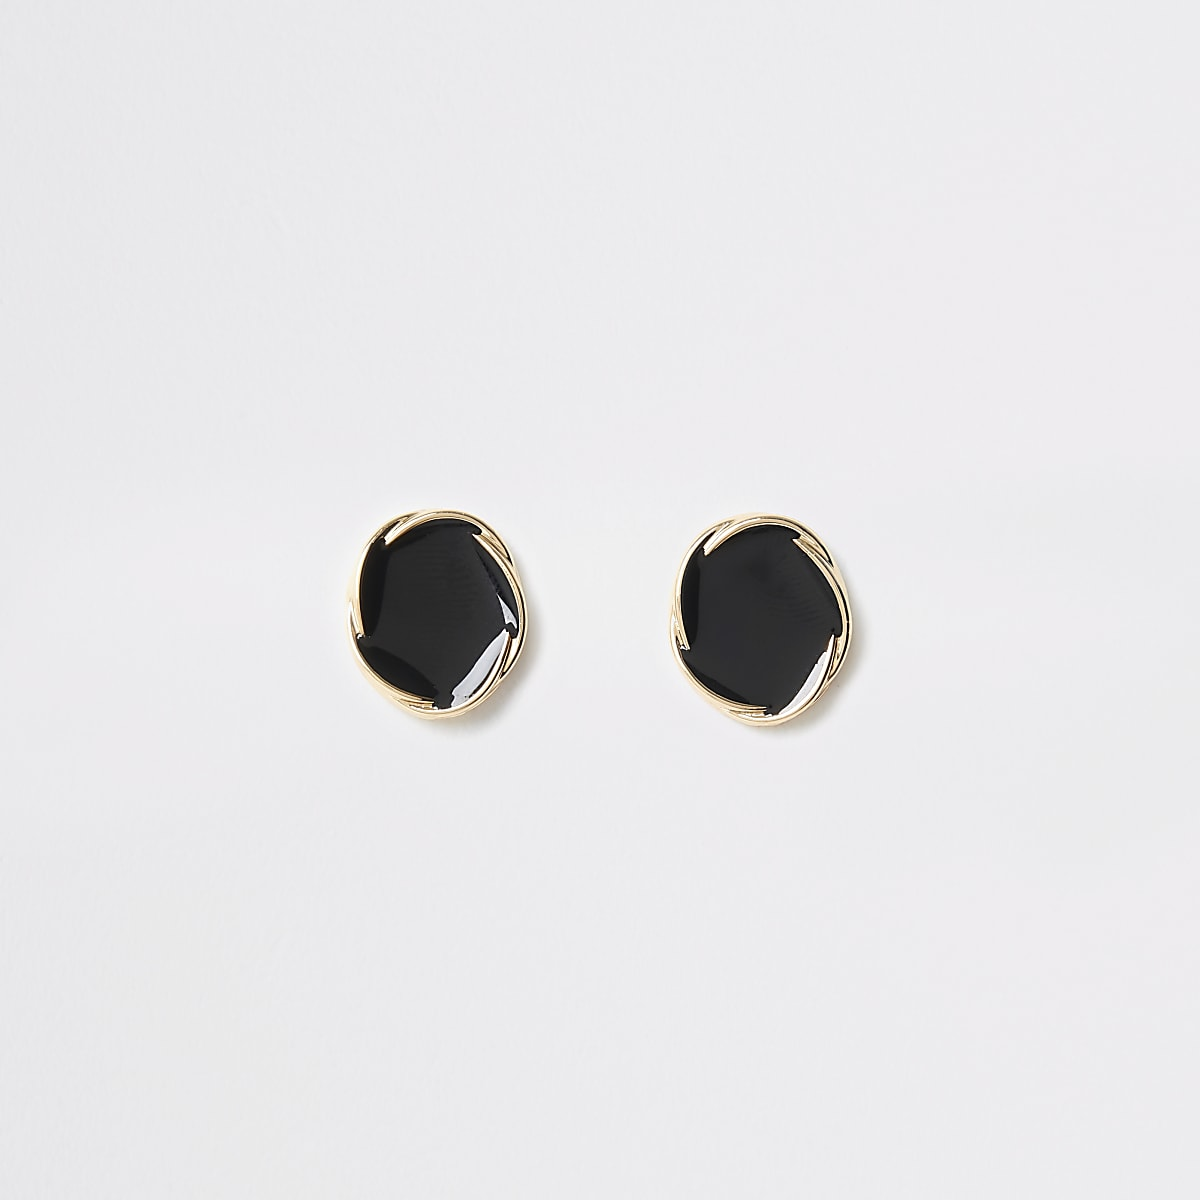 Gold colour twist stud earrings